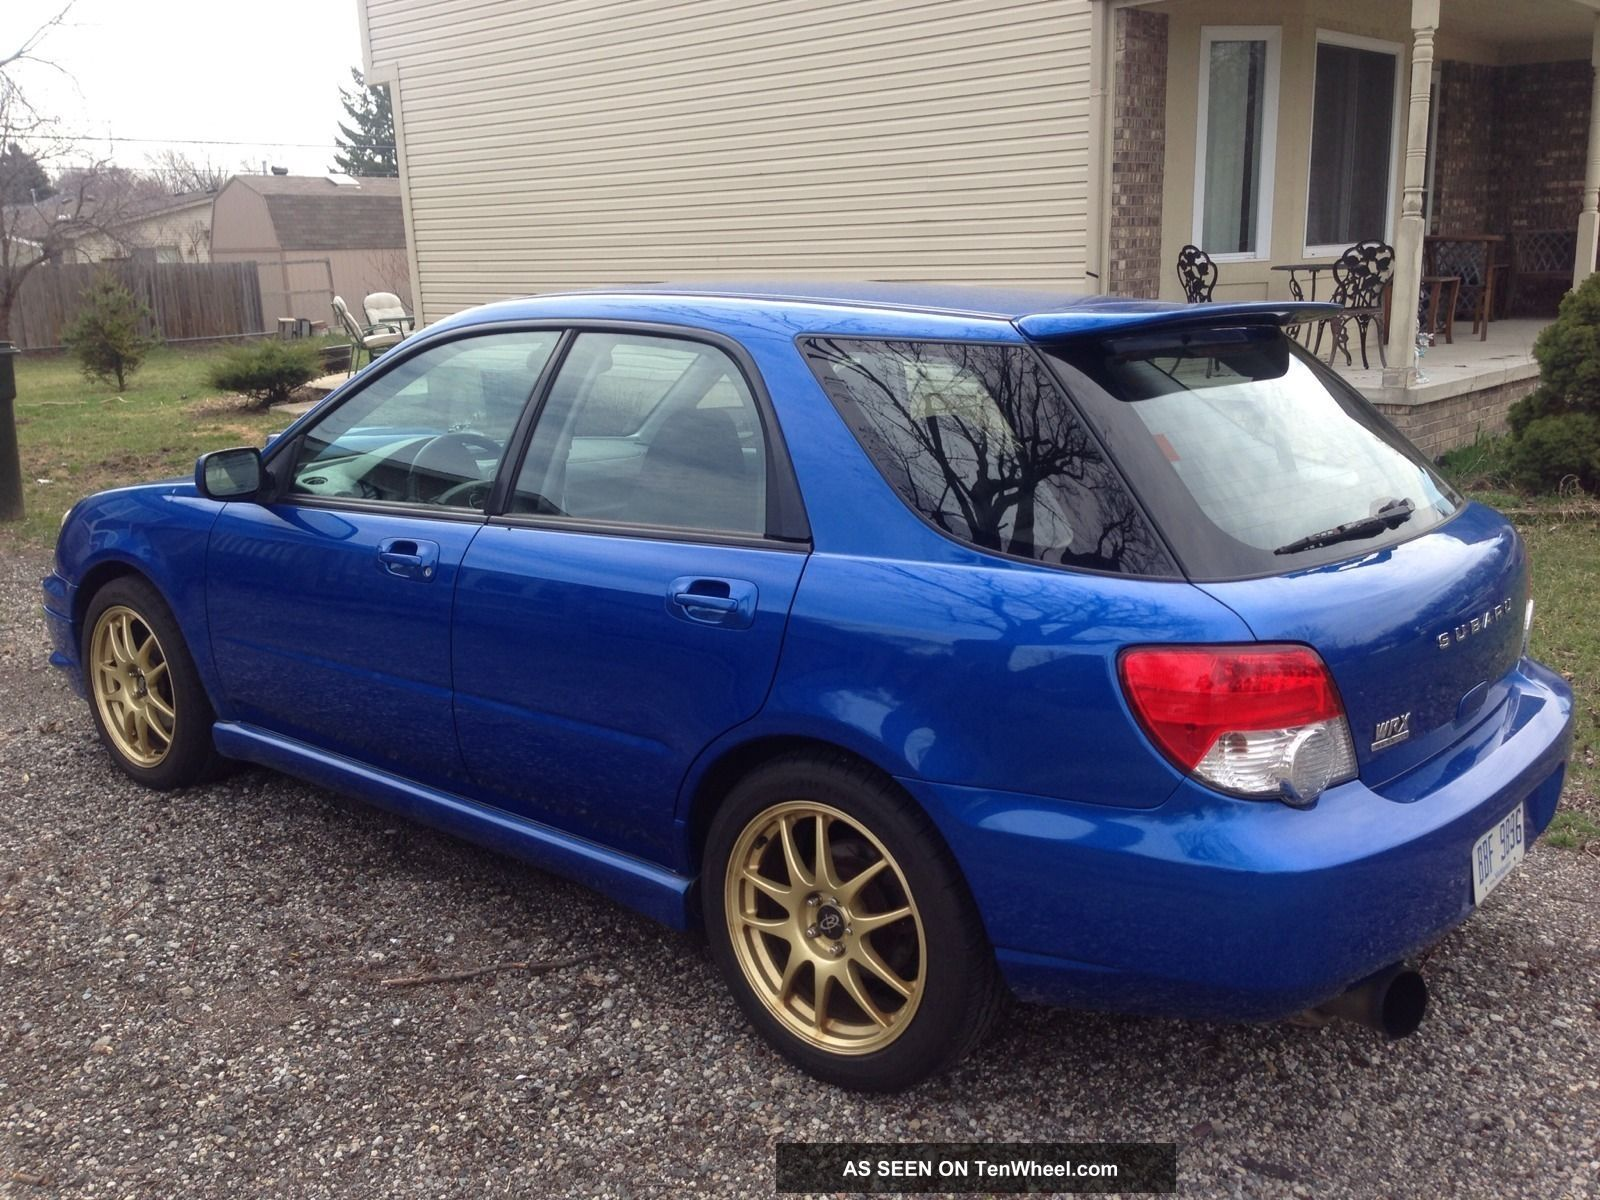 pin by joe miller on auto s i currently own or have owned a version of subaru wrx wagon wrx wagon subaru wrx subaru wrx wagon